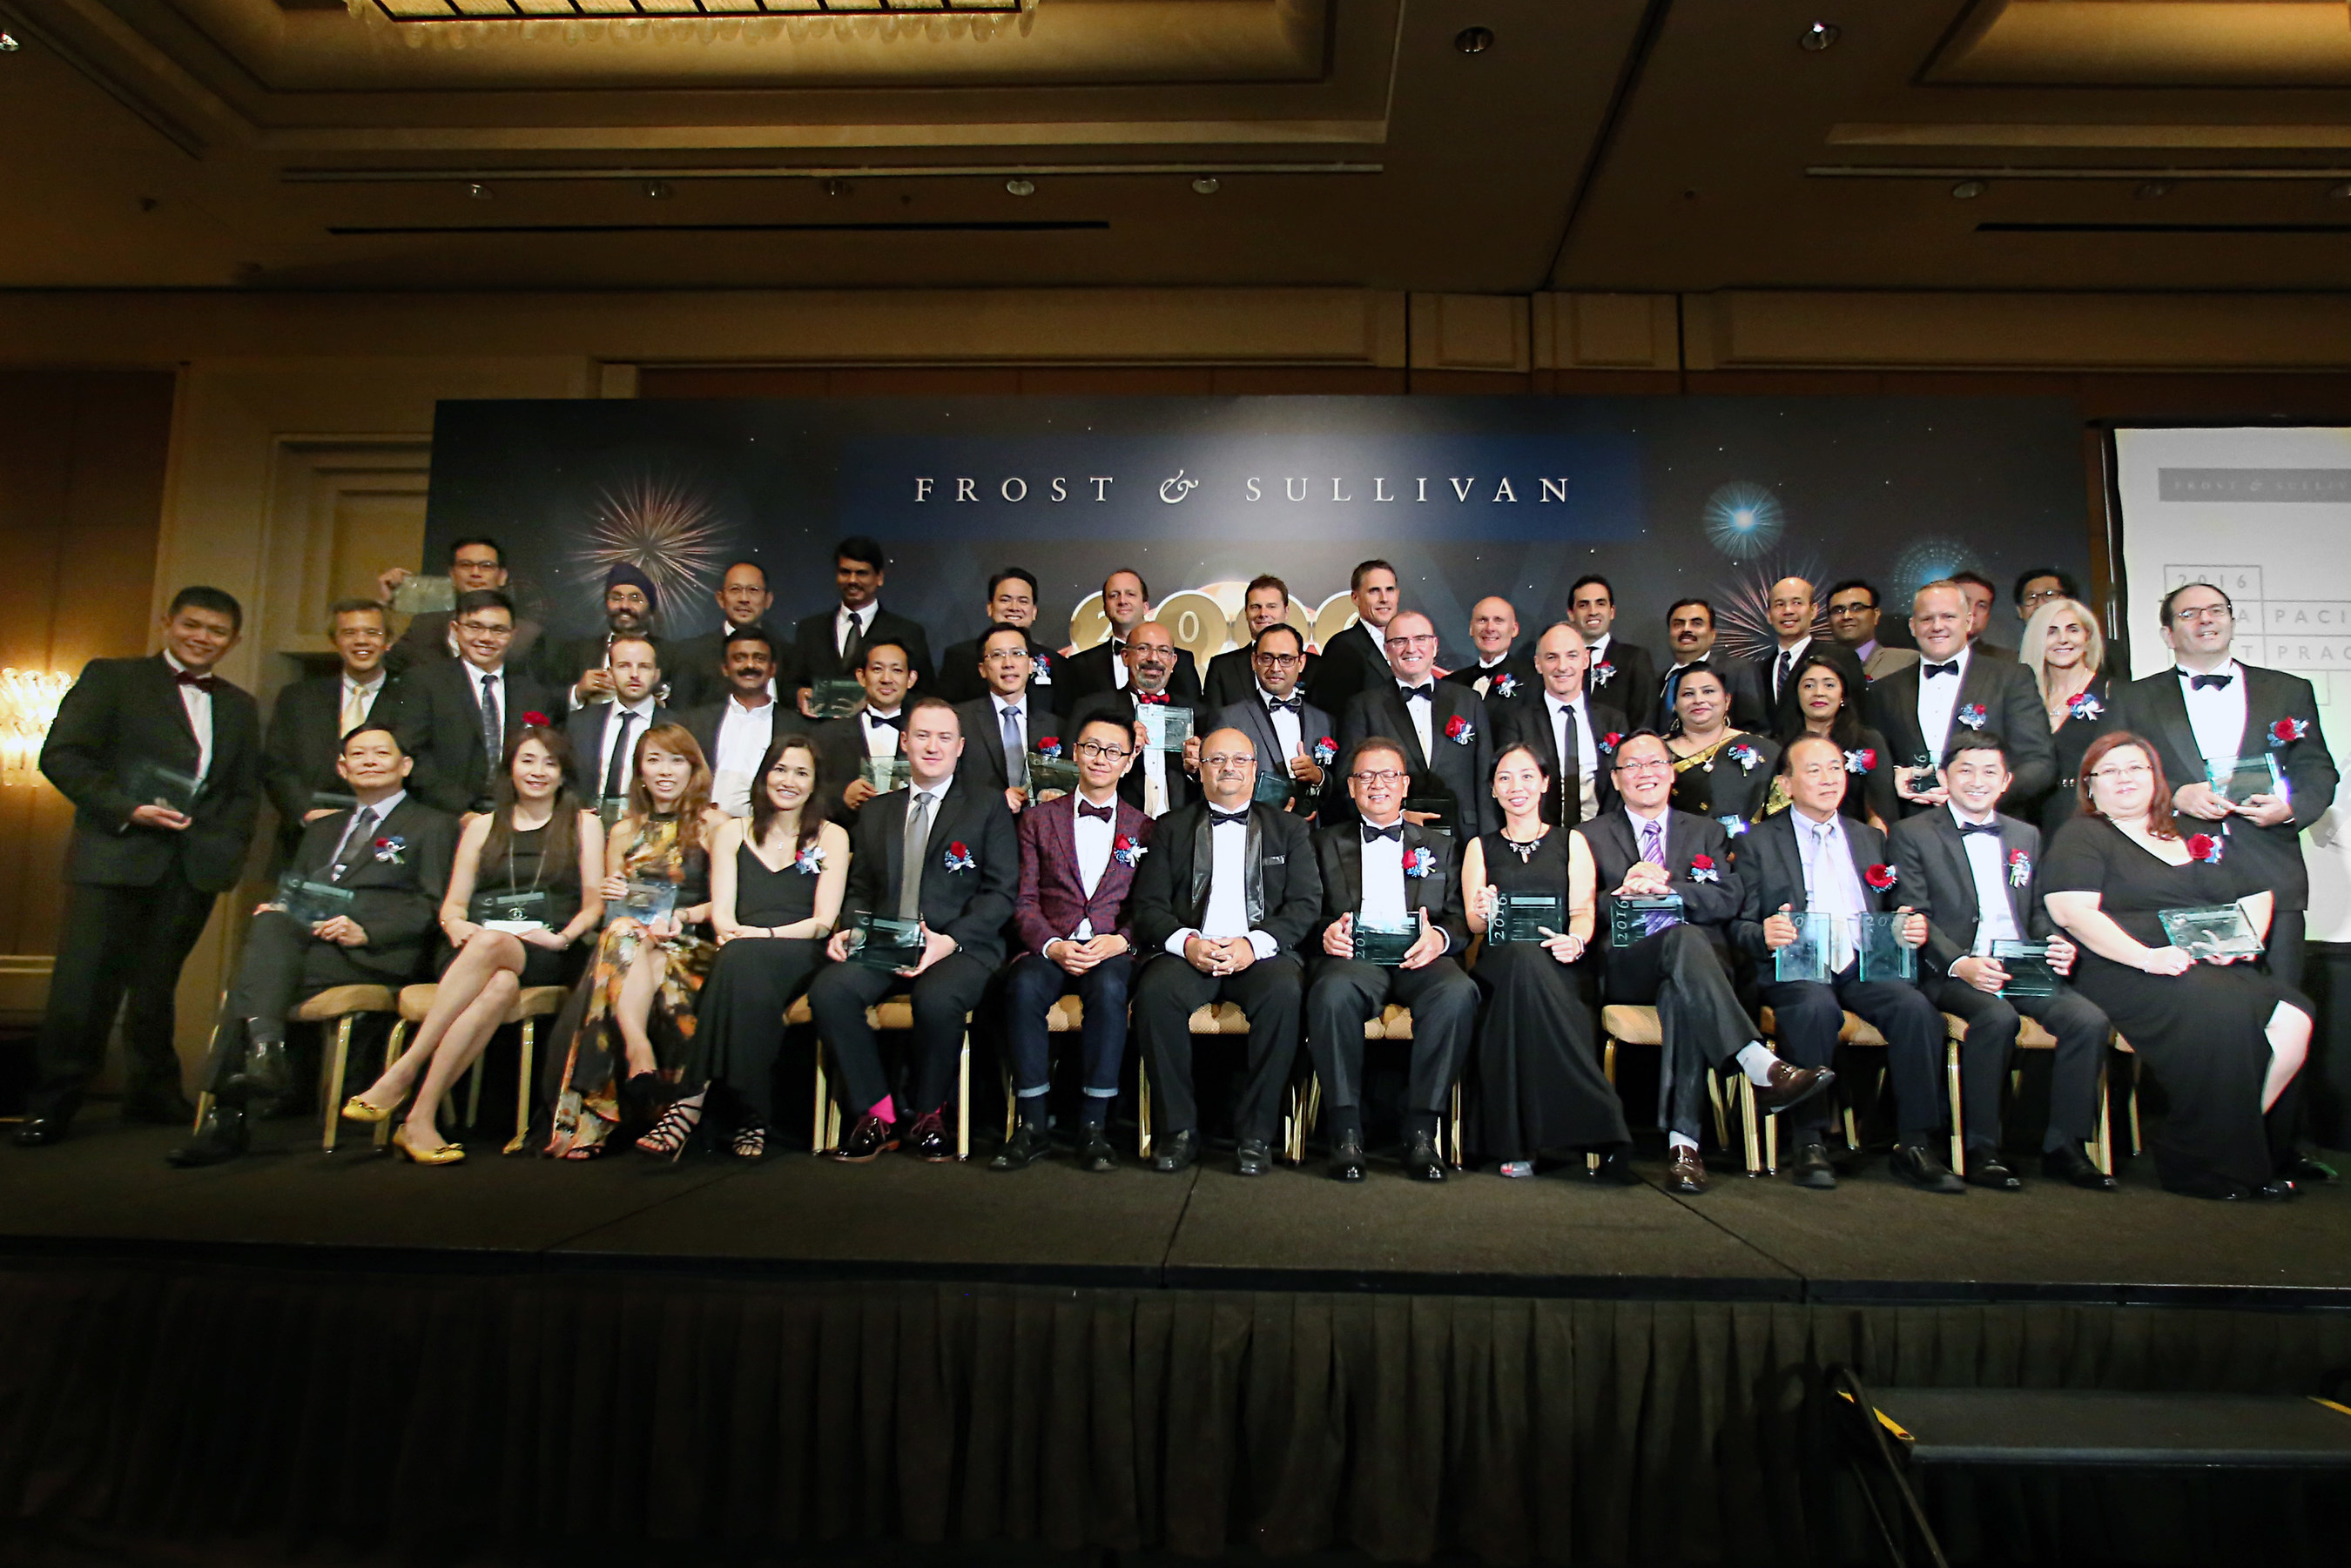 Award recipients of the 2016 Frost & Sullivan Asia Pacific Best Practices Awards